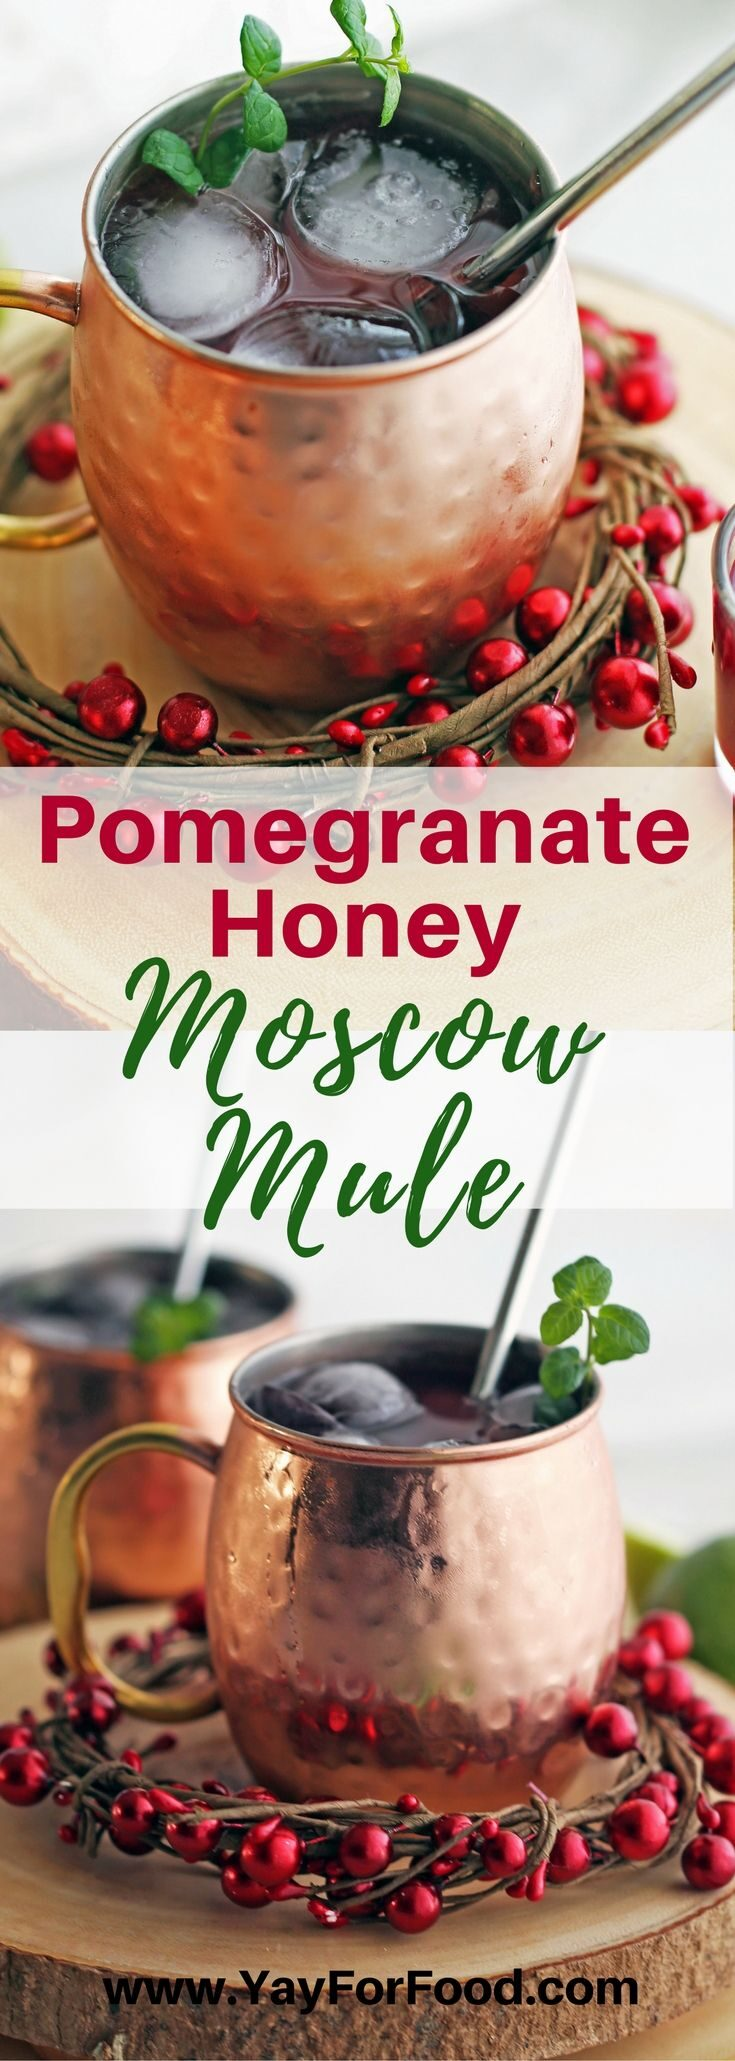 Pomegranate Honey Moscow Mules are a lovely seasonal twist on the classic Moscow Mule. It's a festive and refreshing drink that's perfect to sip on during the holidays!